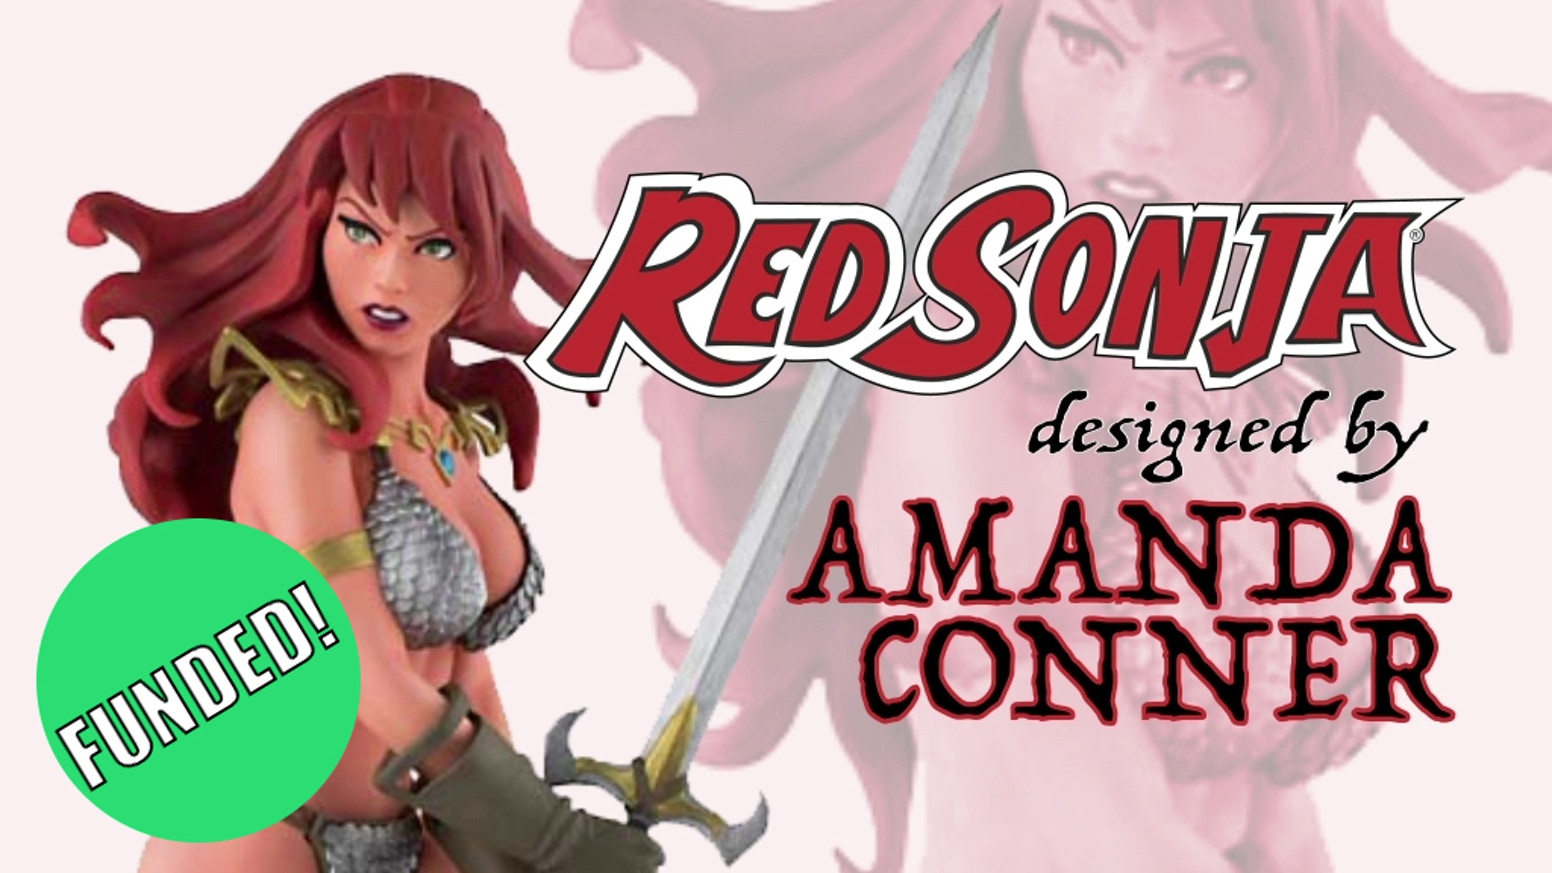 We are bringing Amanda Conner's incredible Red Sonja artwork to life in a beautiful collector statue.